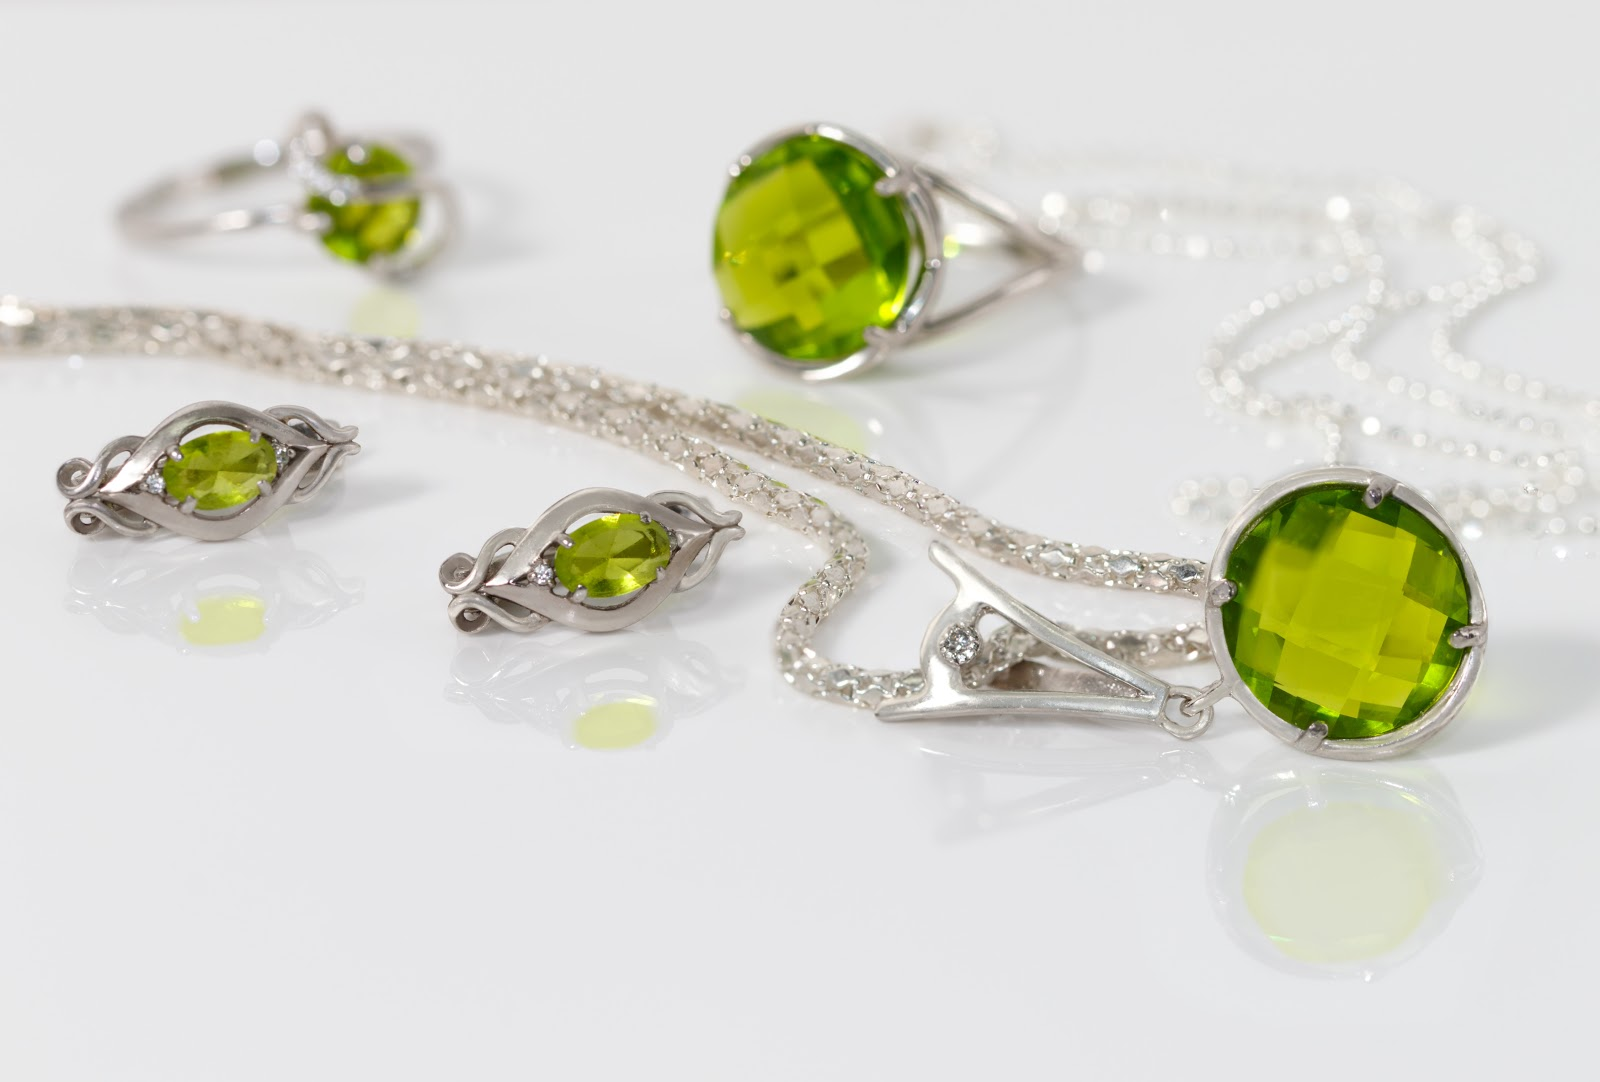 Close-up beauty silver pendant, earrings with peridot on background  chain and rings on white acrylic desk.